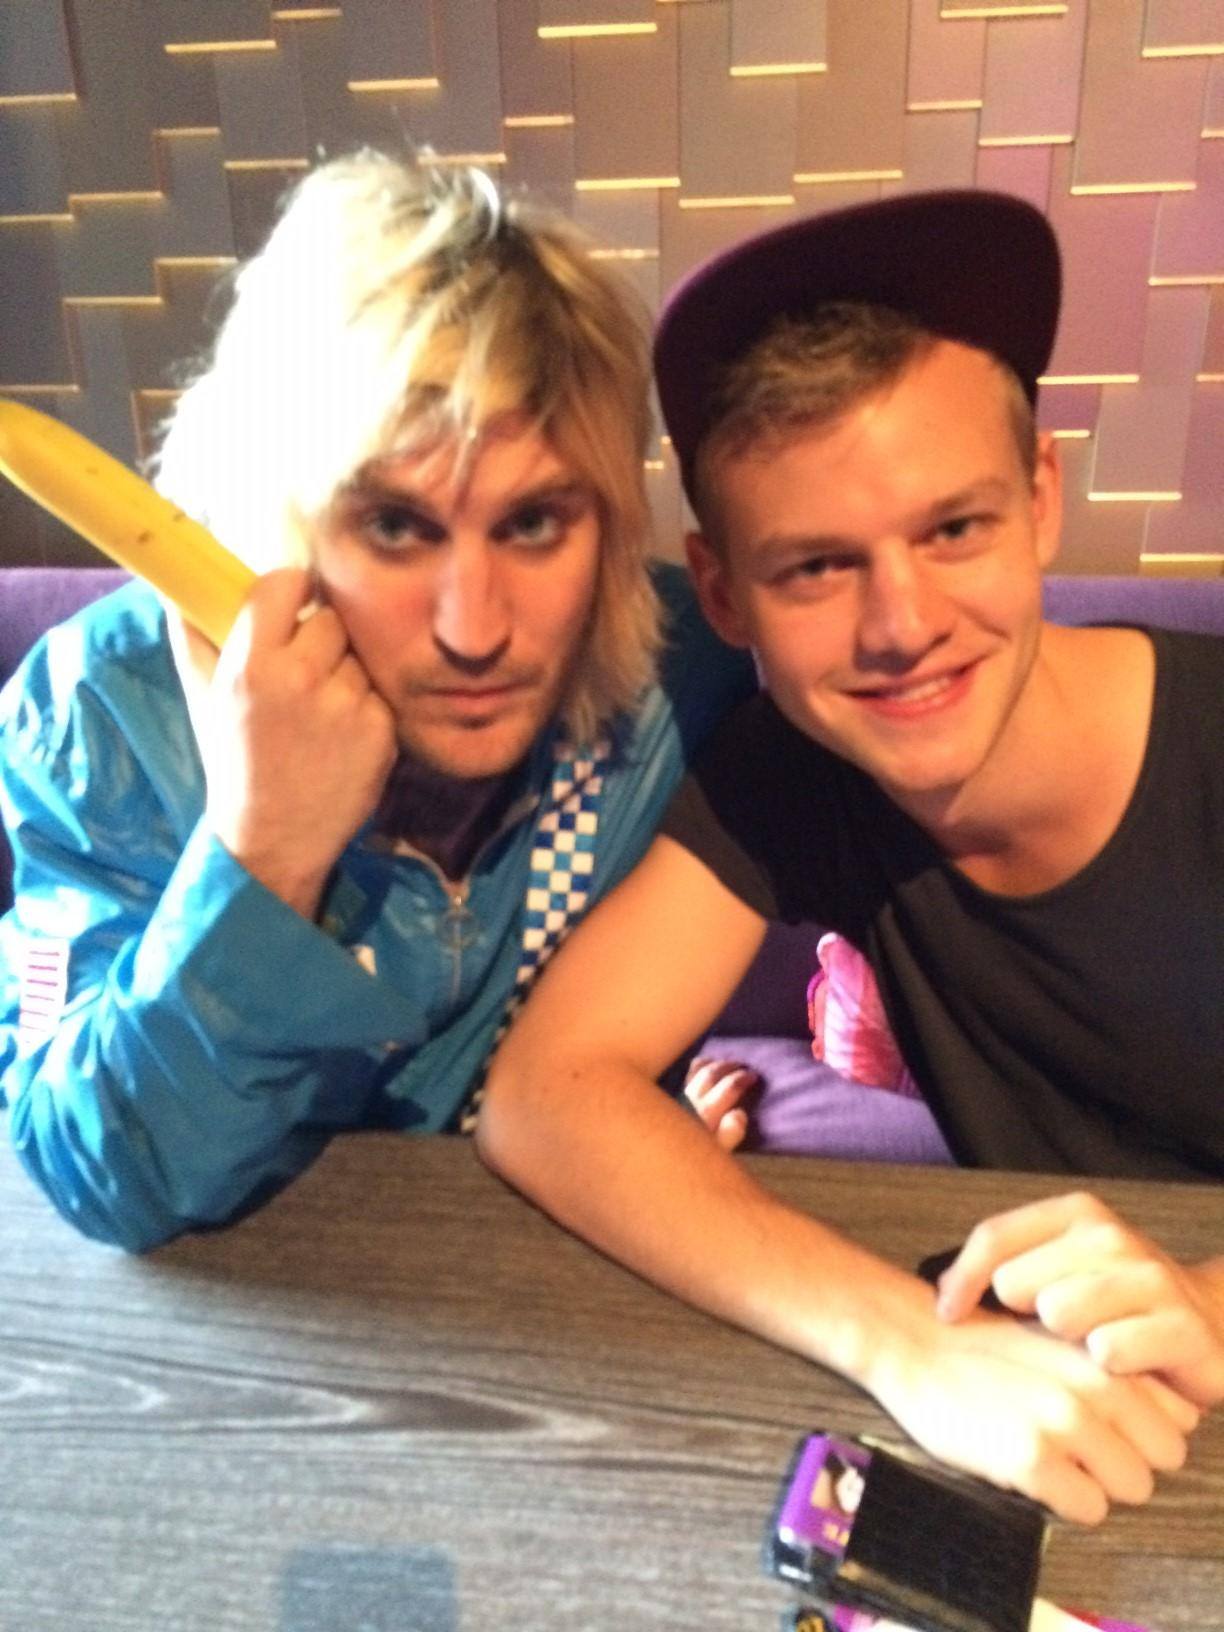 RT @MoreComedy: Our @joelcreasey hanging out with comedy legend @noelfielding11 at @Just_For_Laughs on the weekend #JFLMTL http://t.co/YWiR…